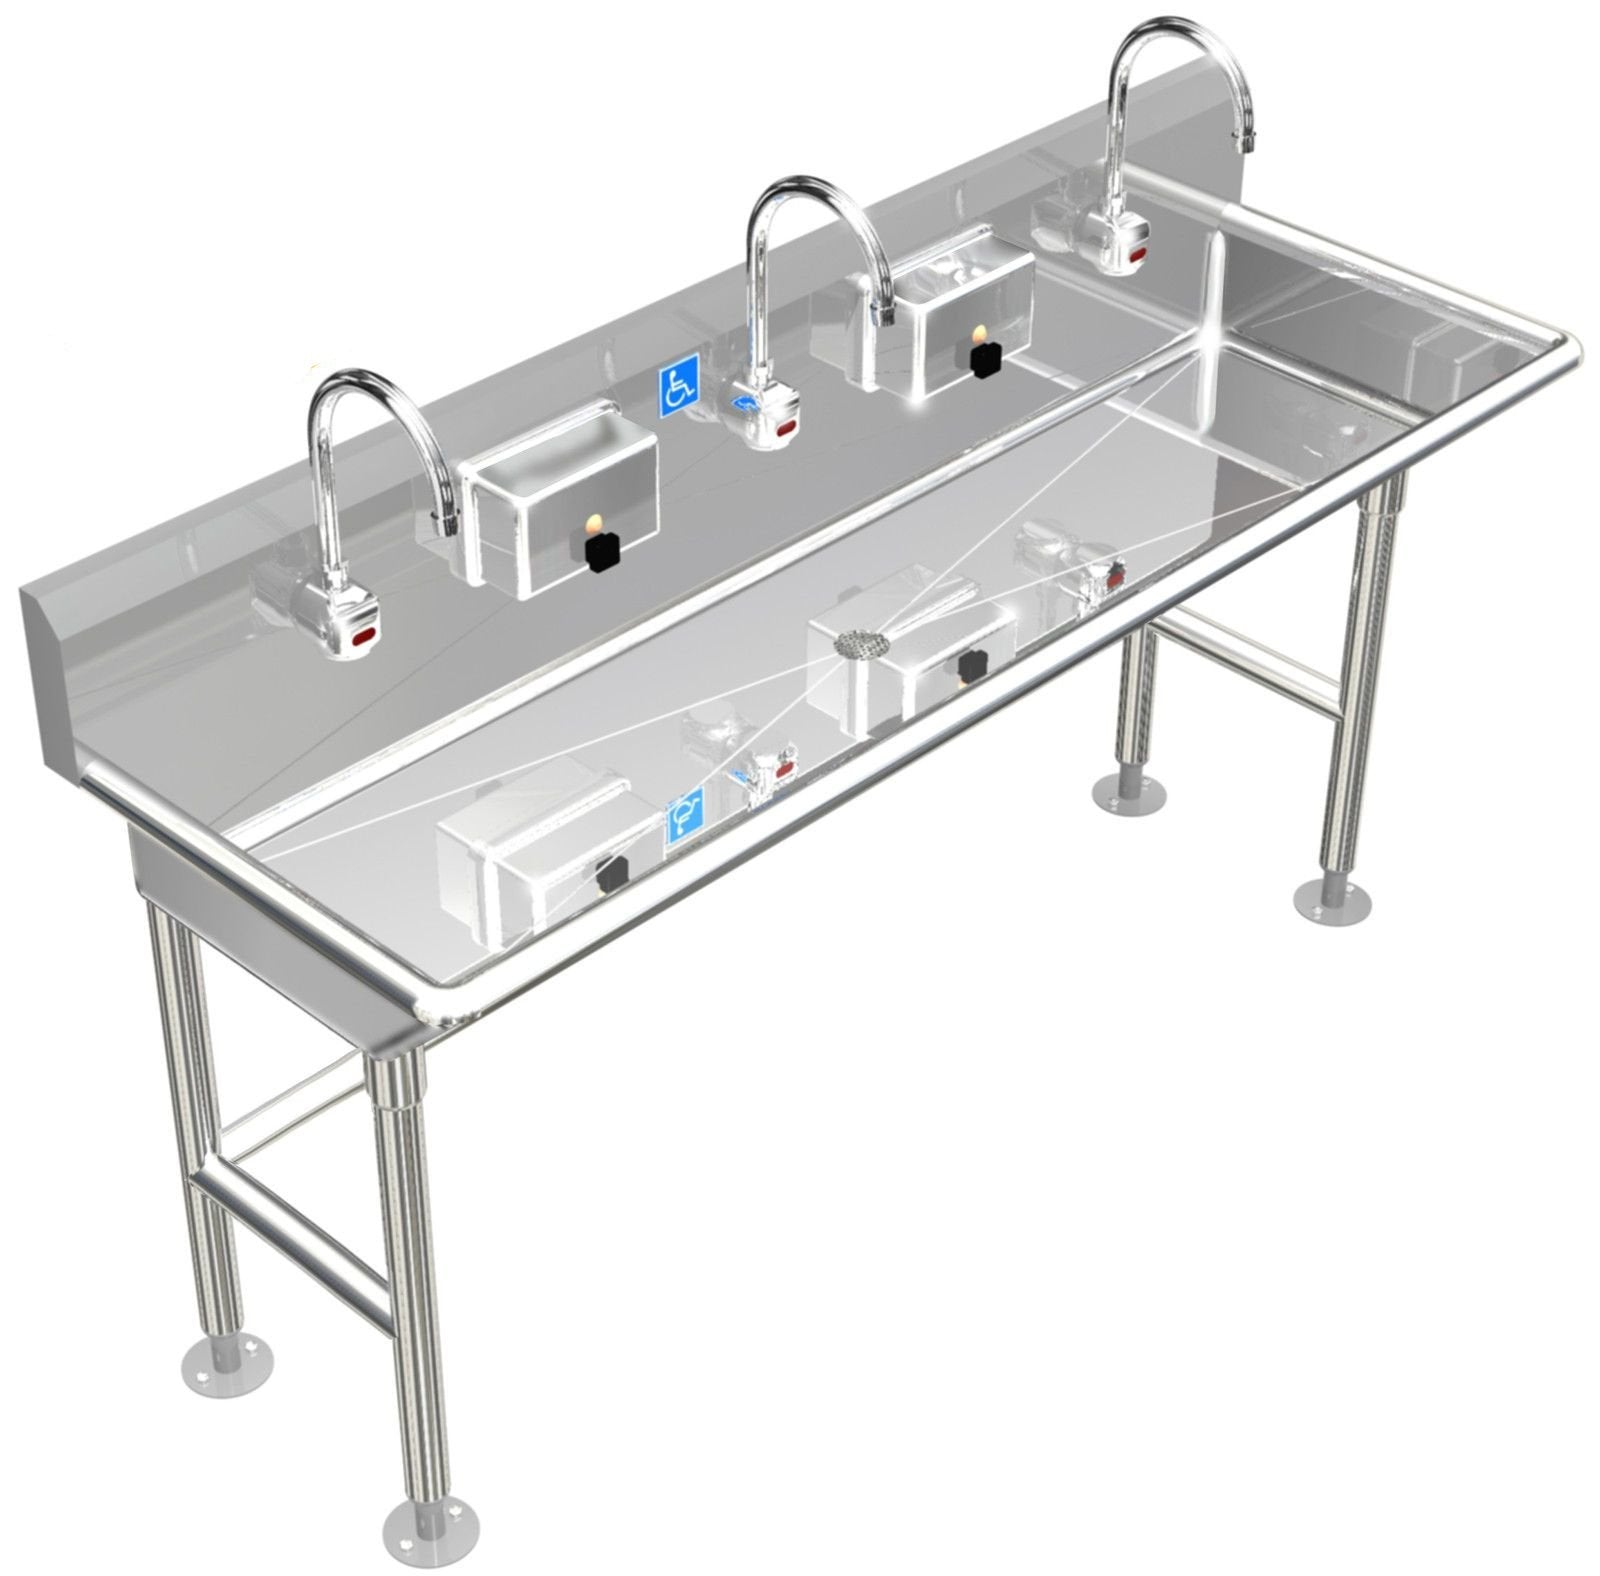 "ADA HAND SINK 3 STATION 80"" FLOOR MOUNT ELECTR FAUCET FREE STANDING STAINLESS S. - Best Sheet Metal, Inc."